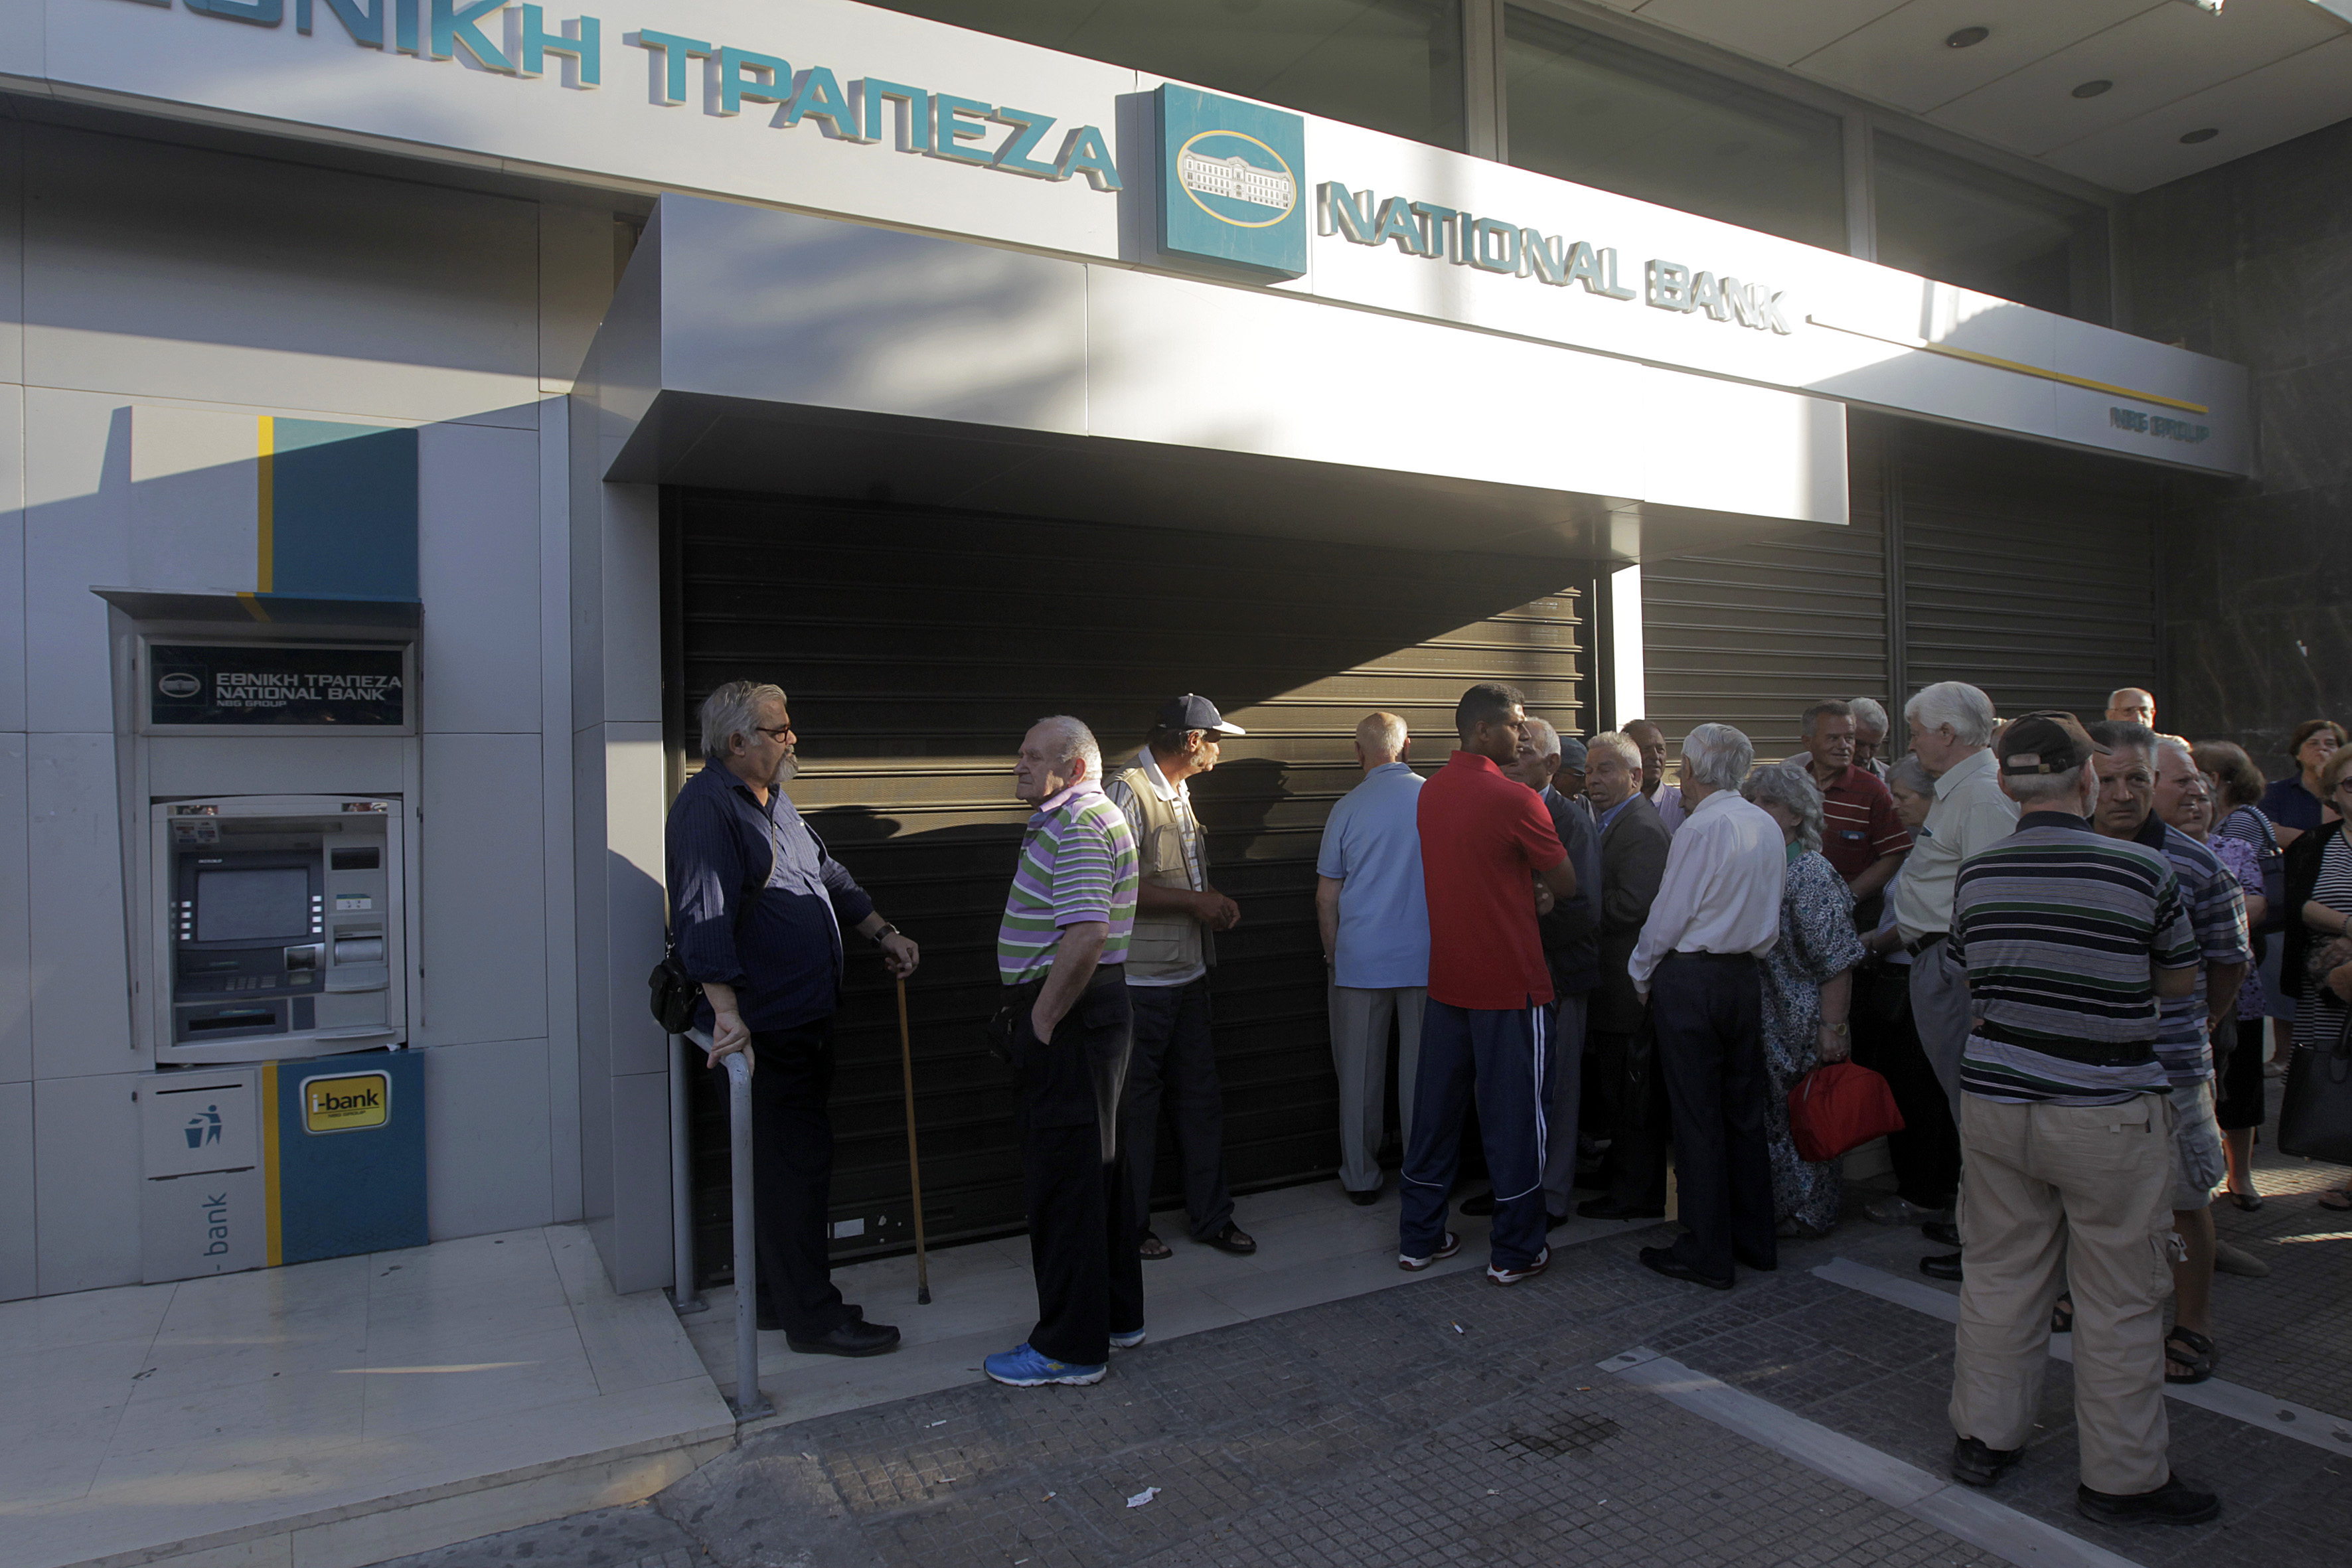 Greek companies transfer operations, bank accounts to Cyprus (updated)